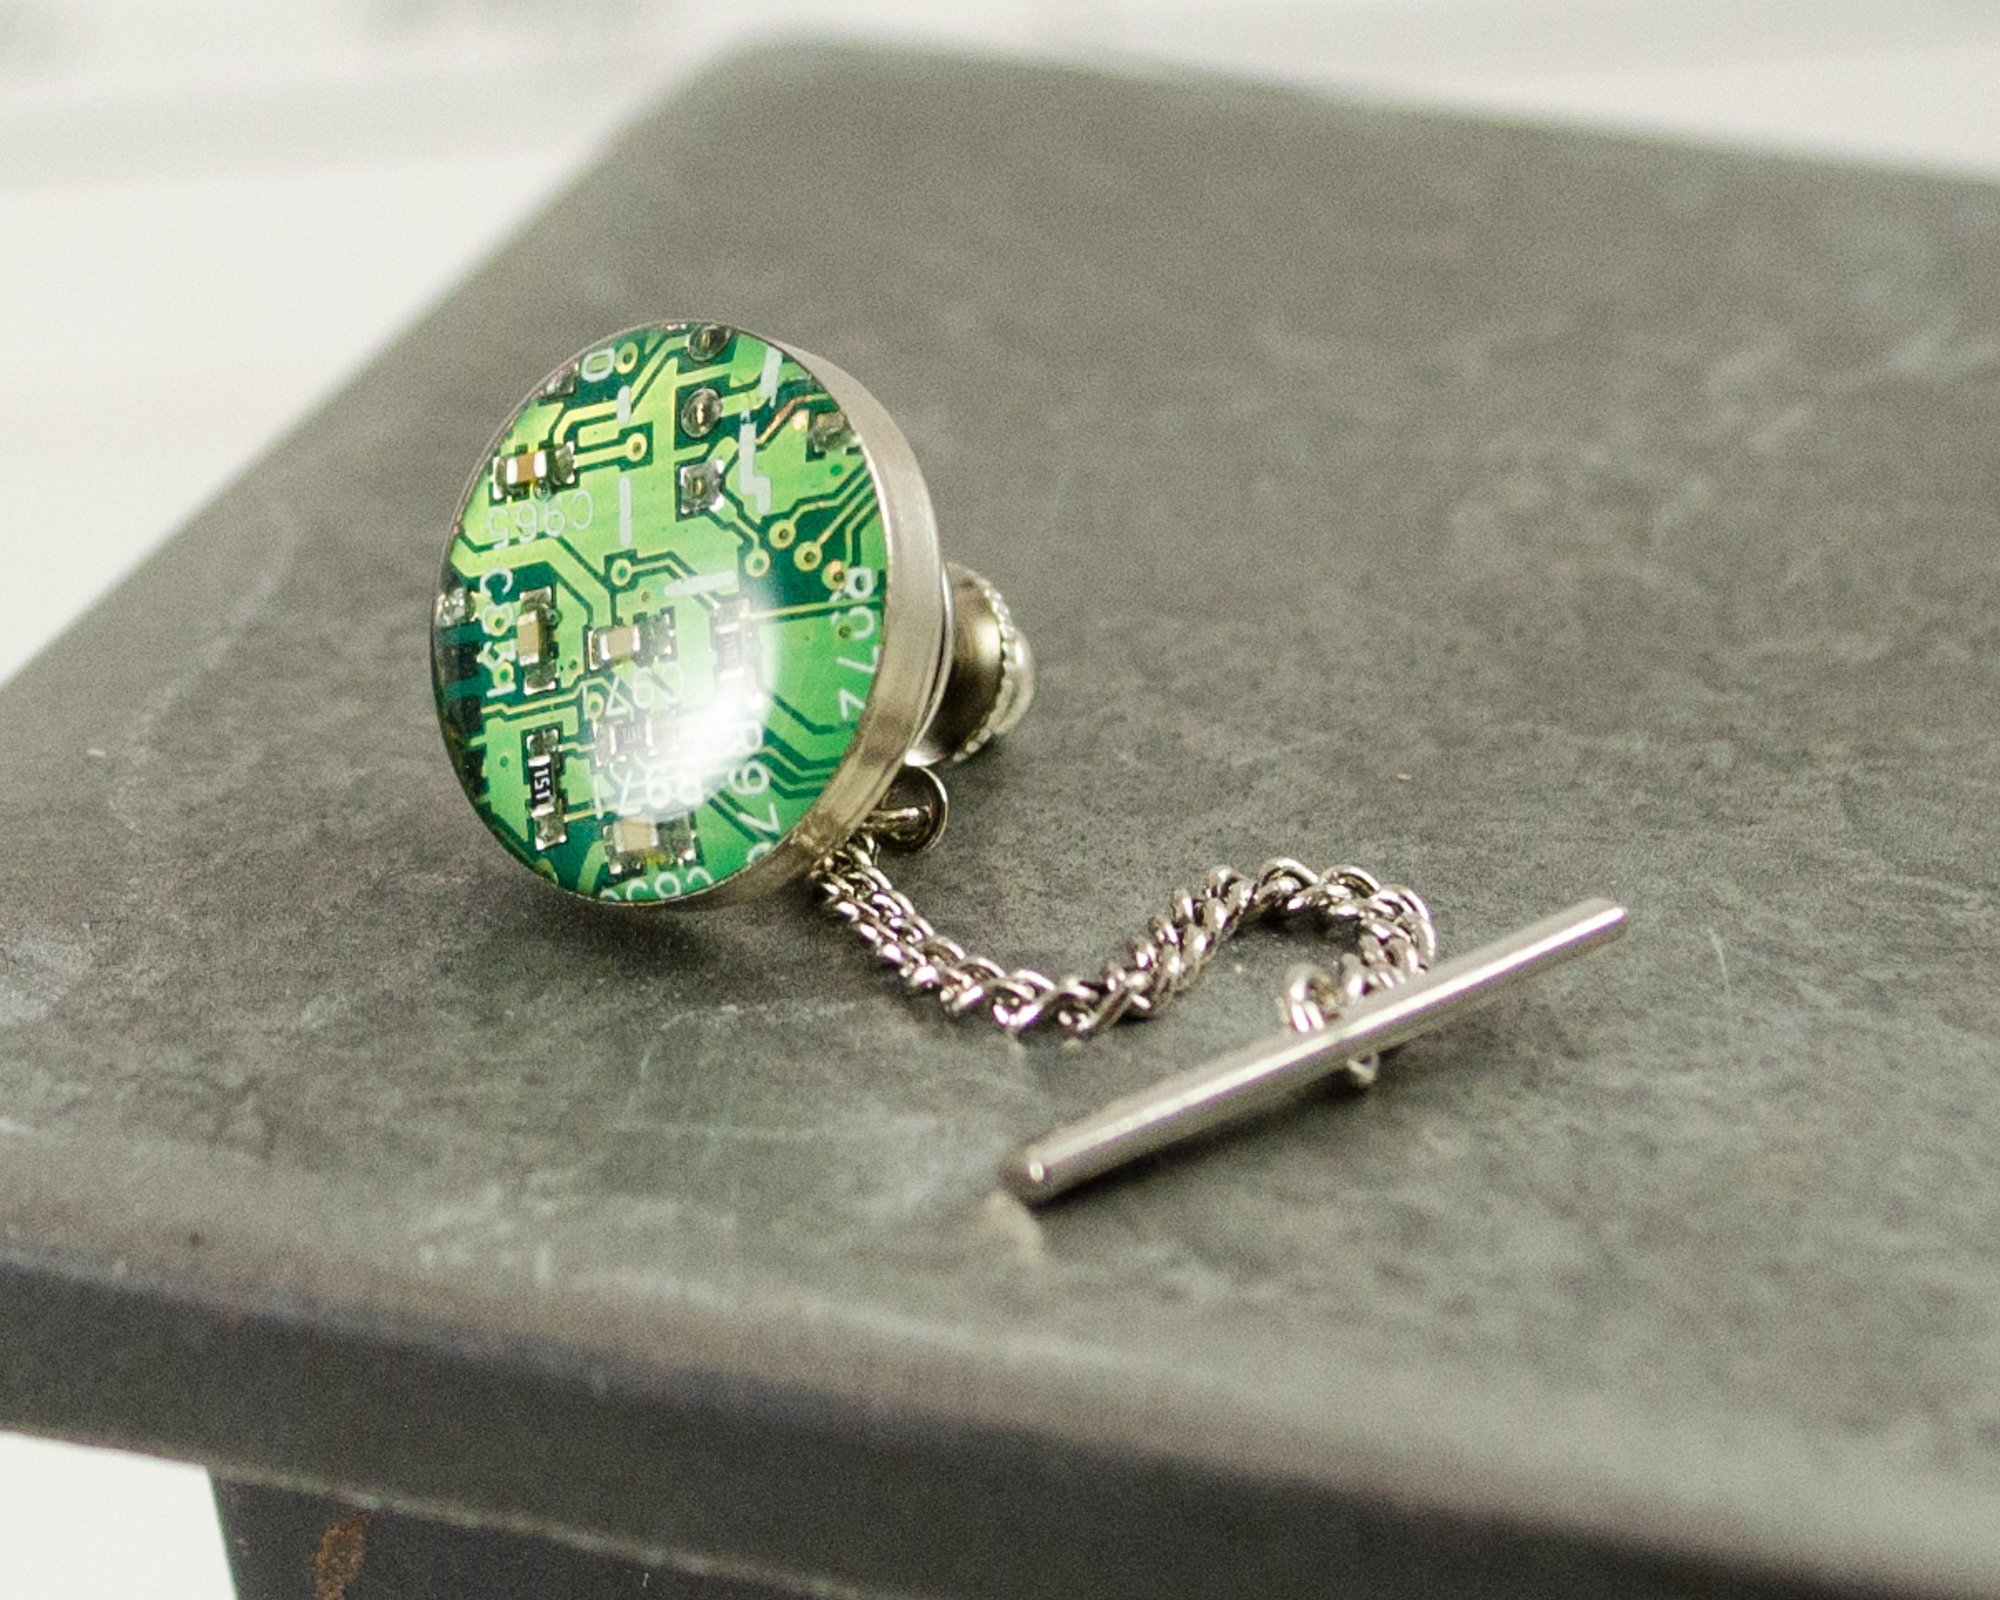 Recycled Circuit Board Tie Tack